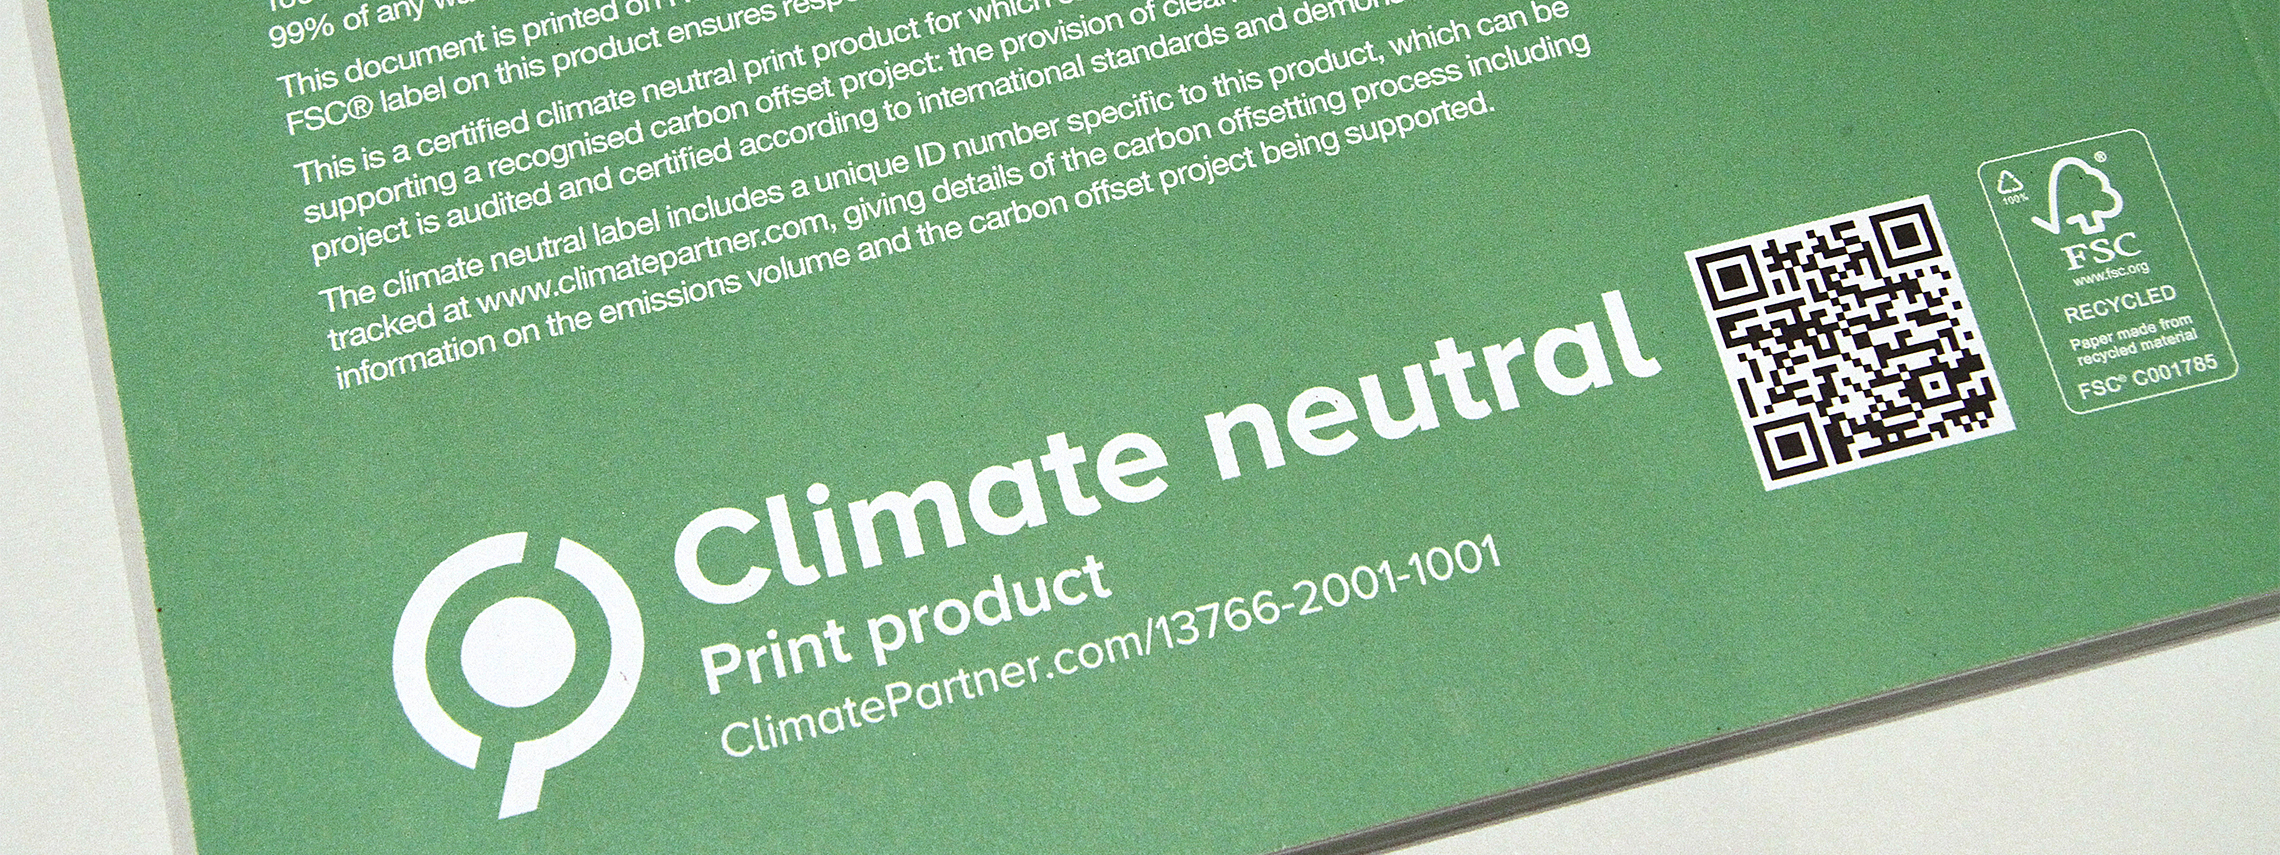 carbon neutral print with QR code